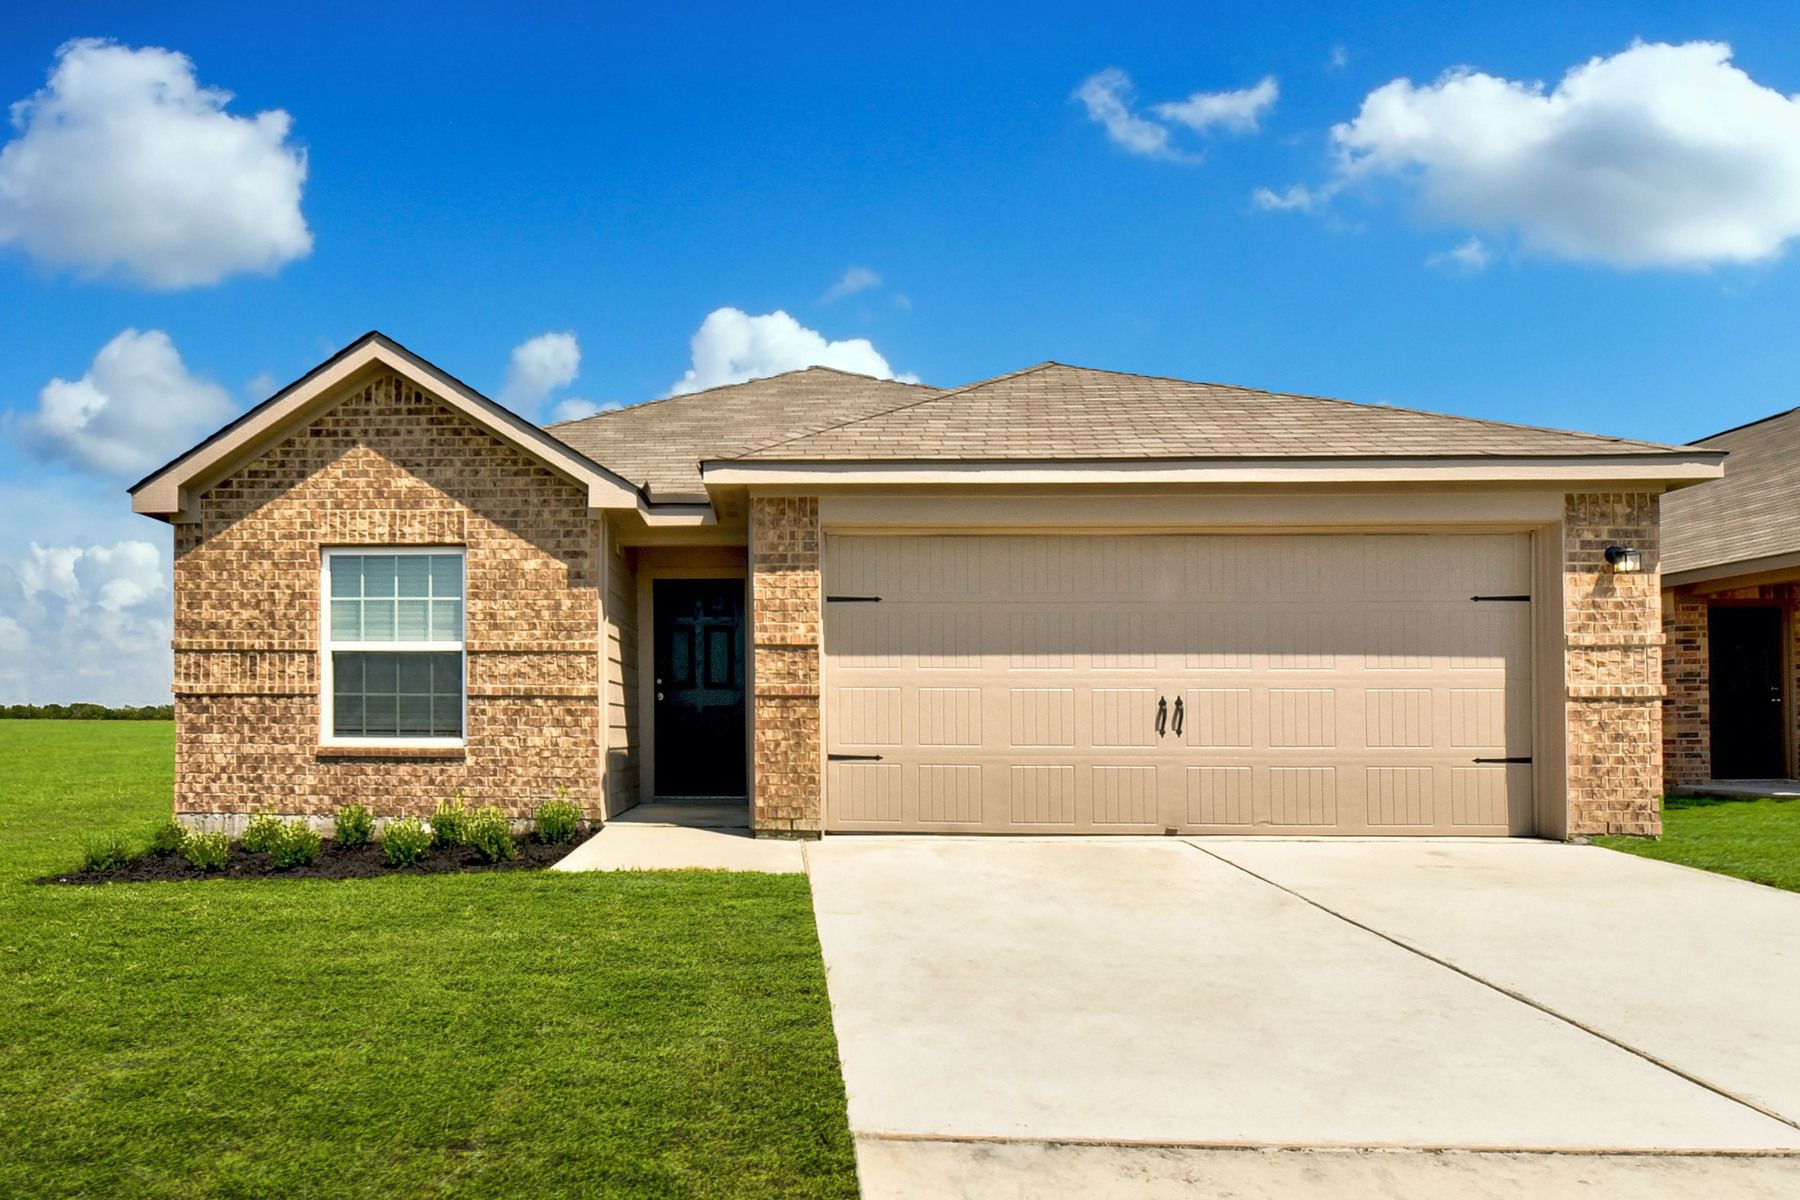 The Fri by LGI Homes:The Frio is a stunning, single-story home at Homestead Estates!